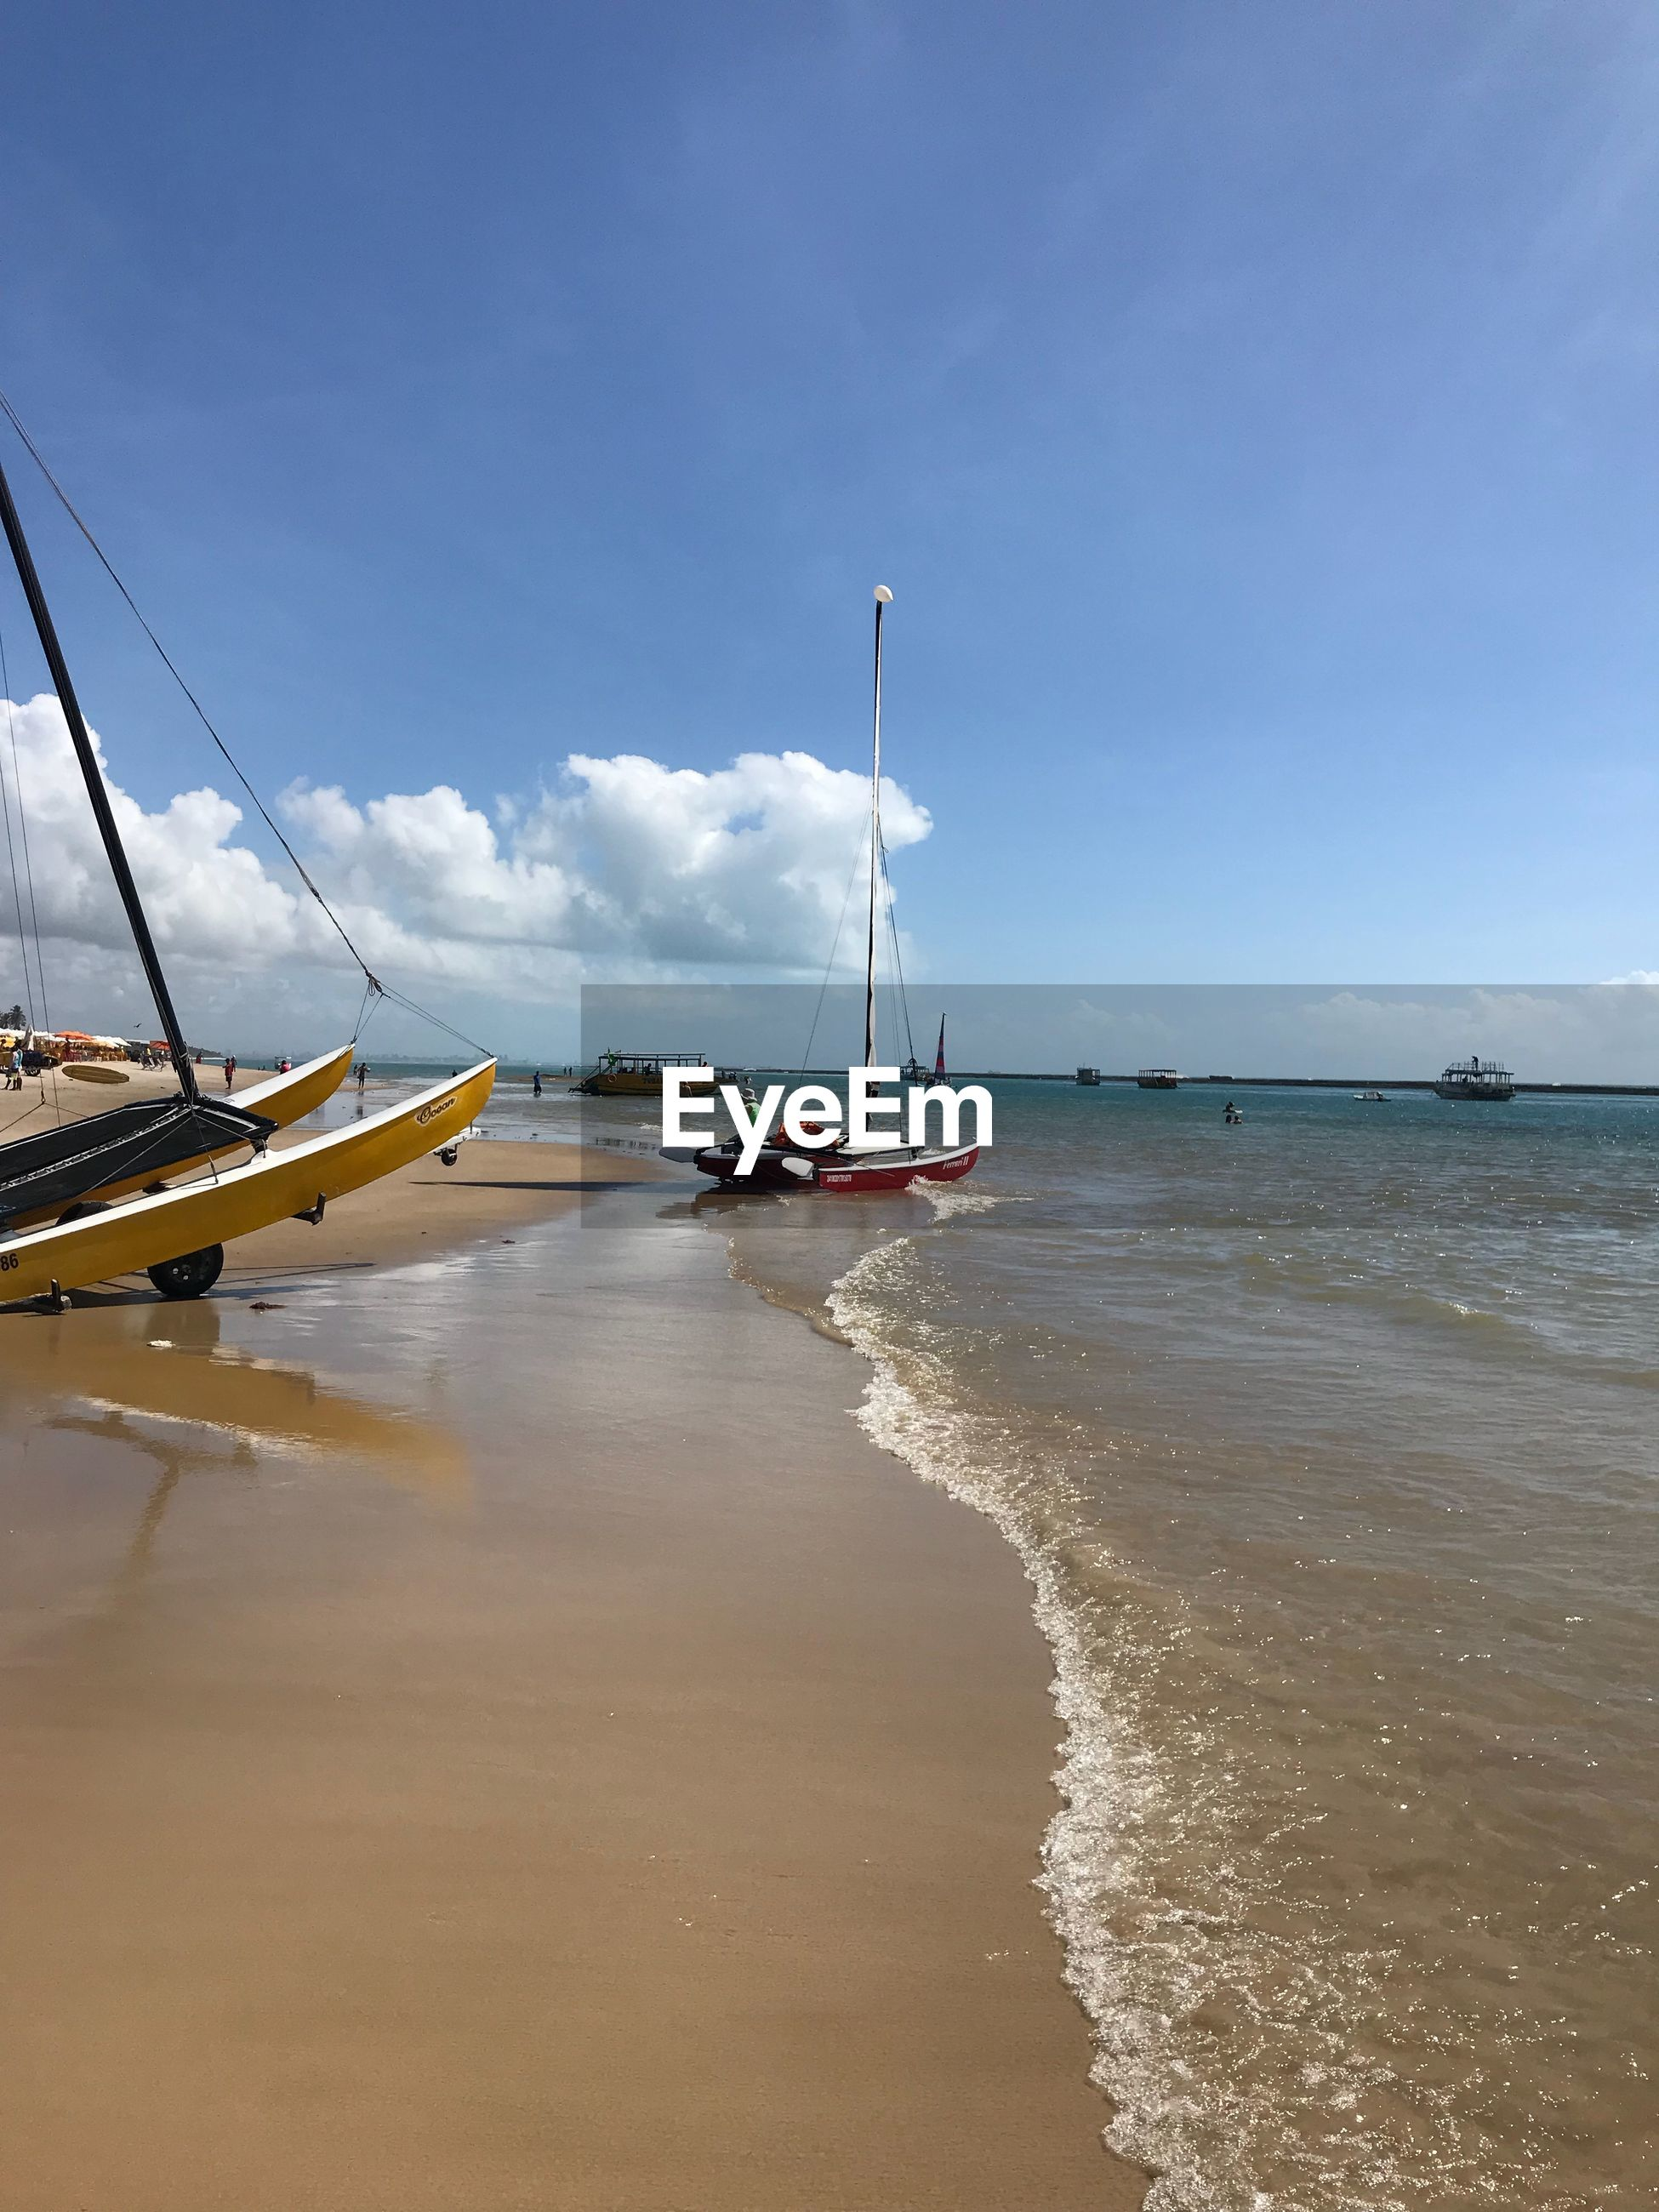 water, sea, sky, transportation, nautical vessel, mode of transportation, beach, land, beauty in nature, day, cloud - sky, nature, scenics - nature, moored, tranquil scene, no people, sand, travel, tranquility, horizon over water, outdoors, sailboat, anchored